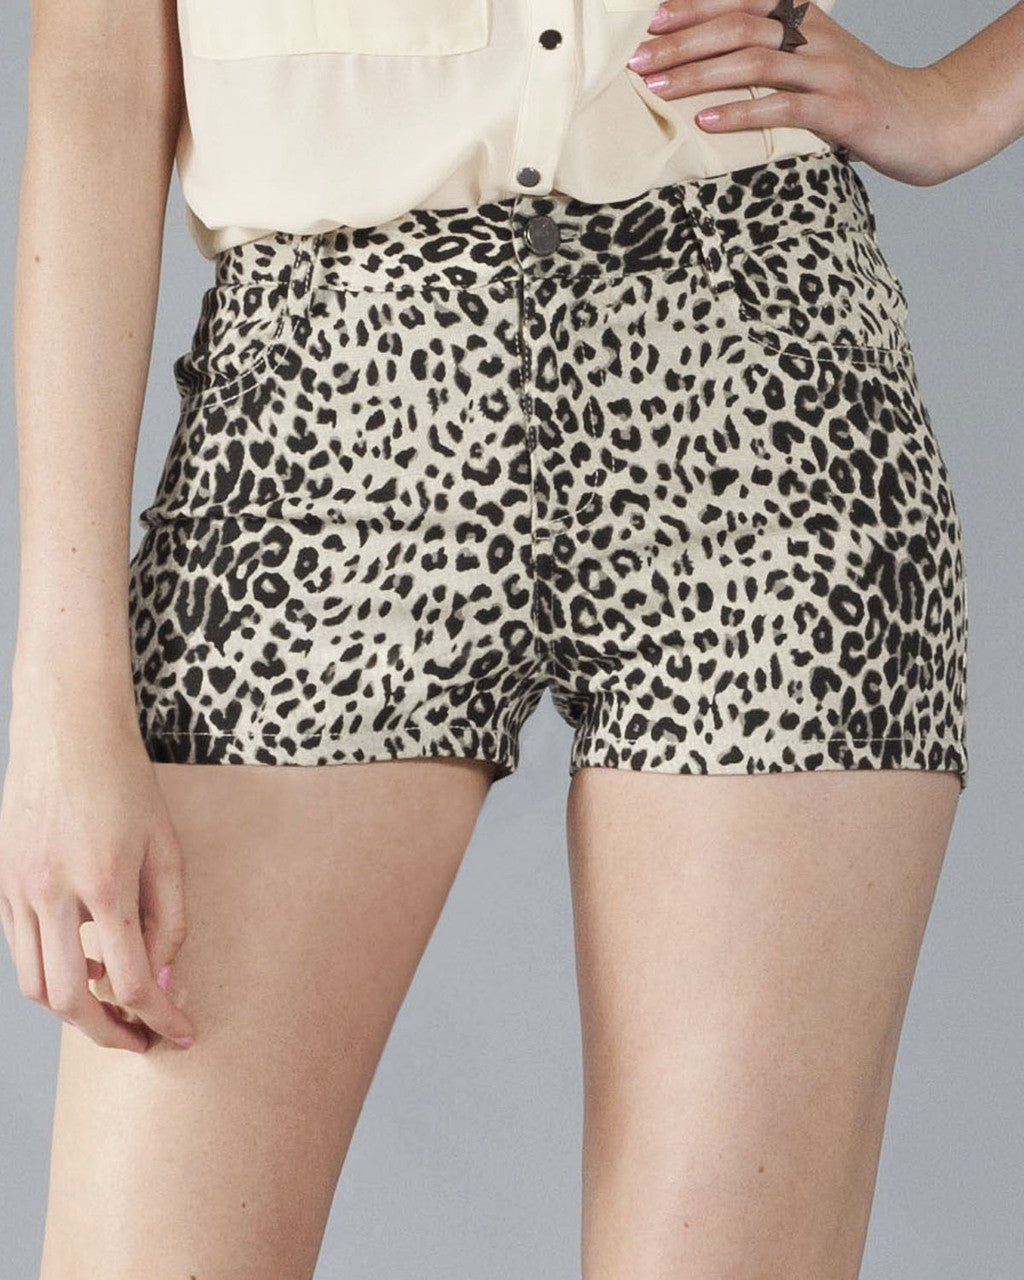 Big Cat Women's Shorts, Cream and Black - The Giant Peach - 4